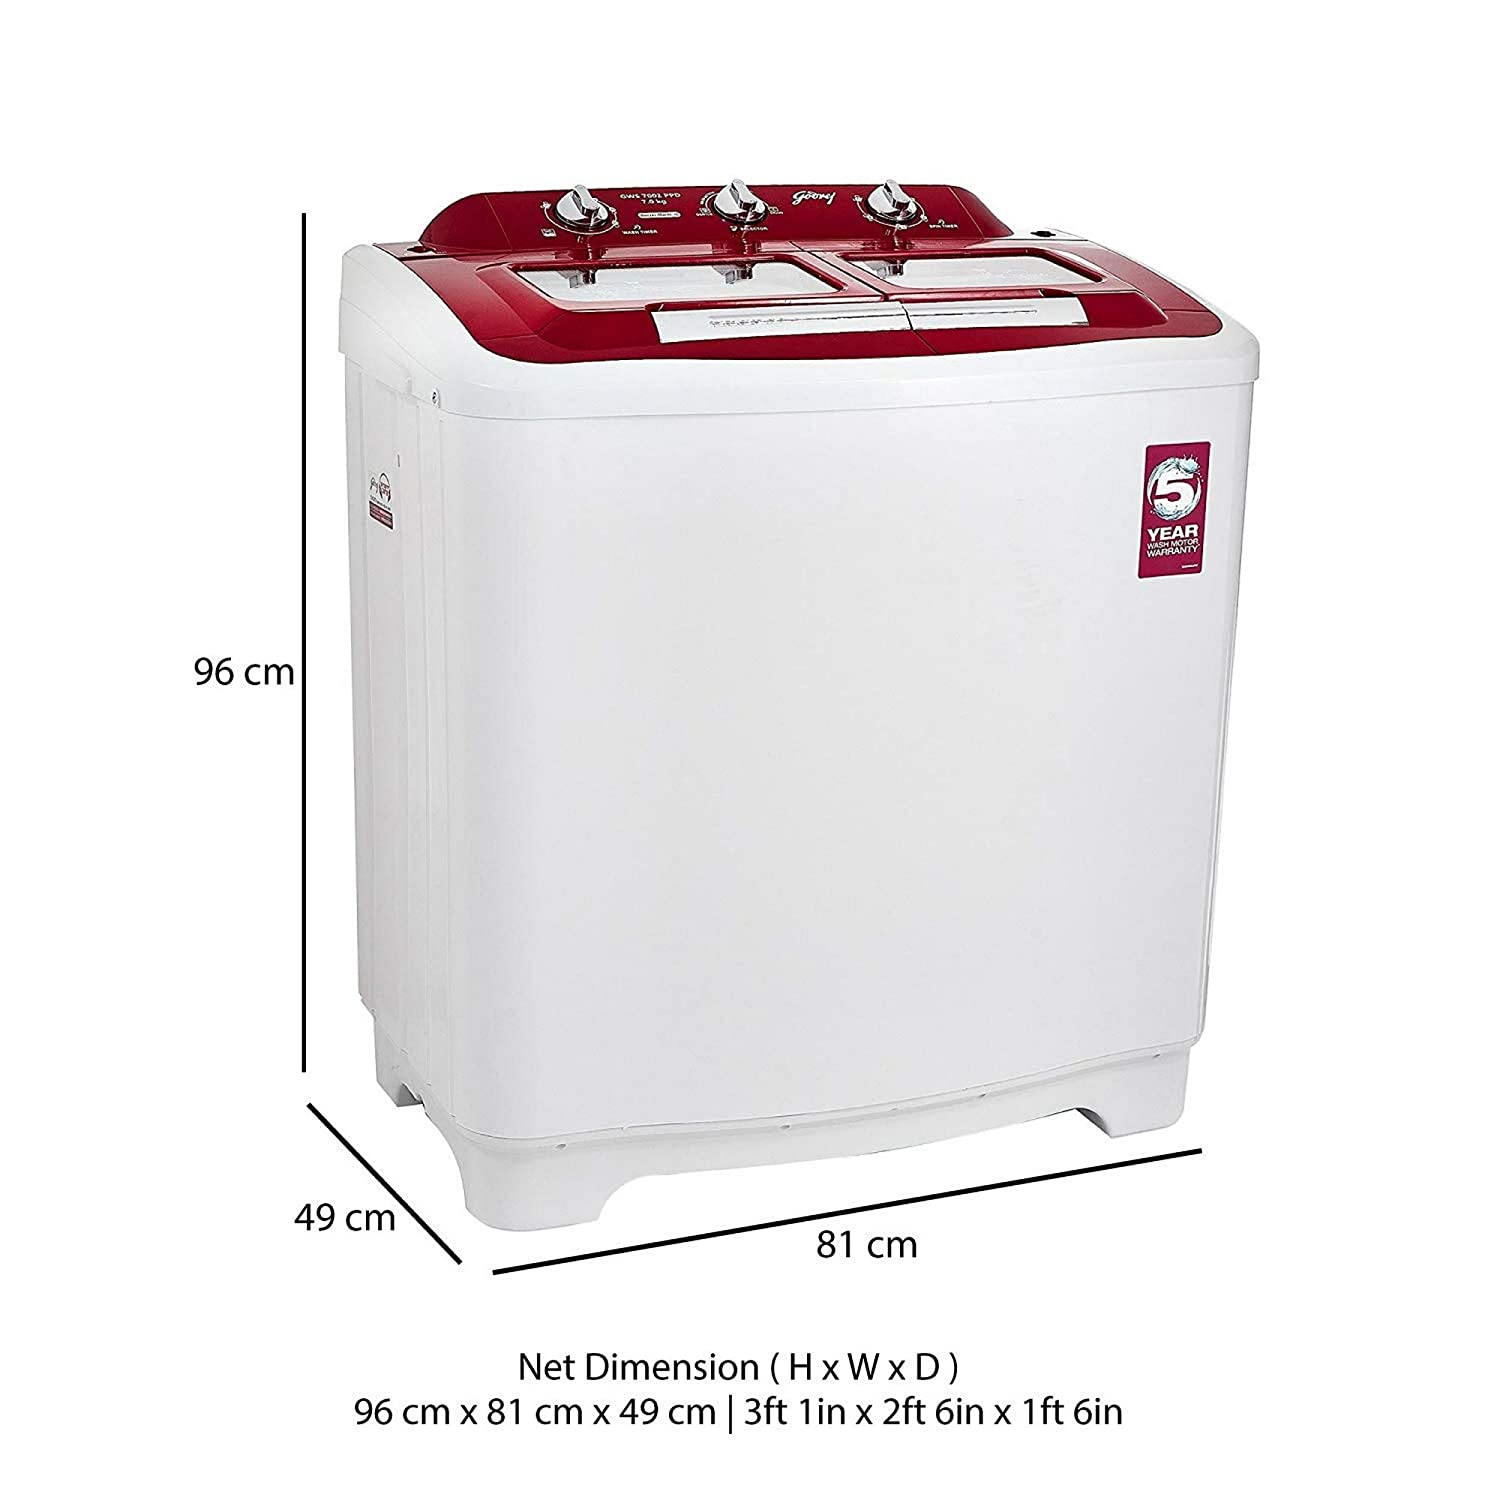 Godrej 7 Kg Semi Automatic Top Loading Washing Machine Gws 7002 Ppd Wiring Diagram Of Videocon Red Home Kitchen